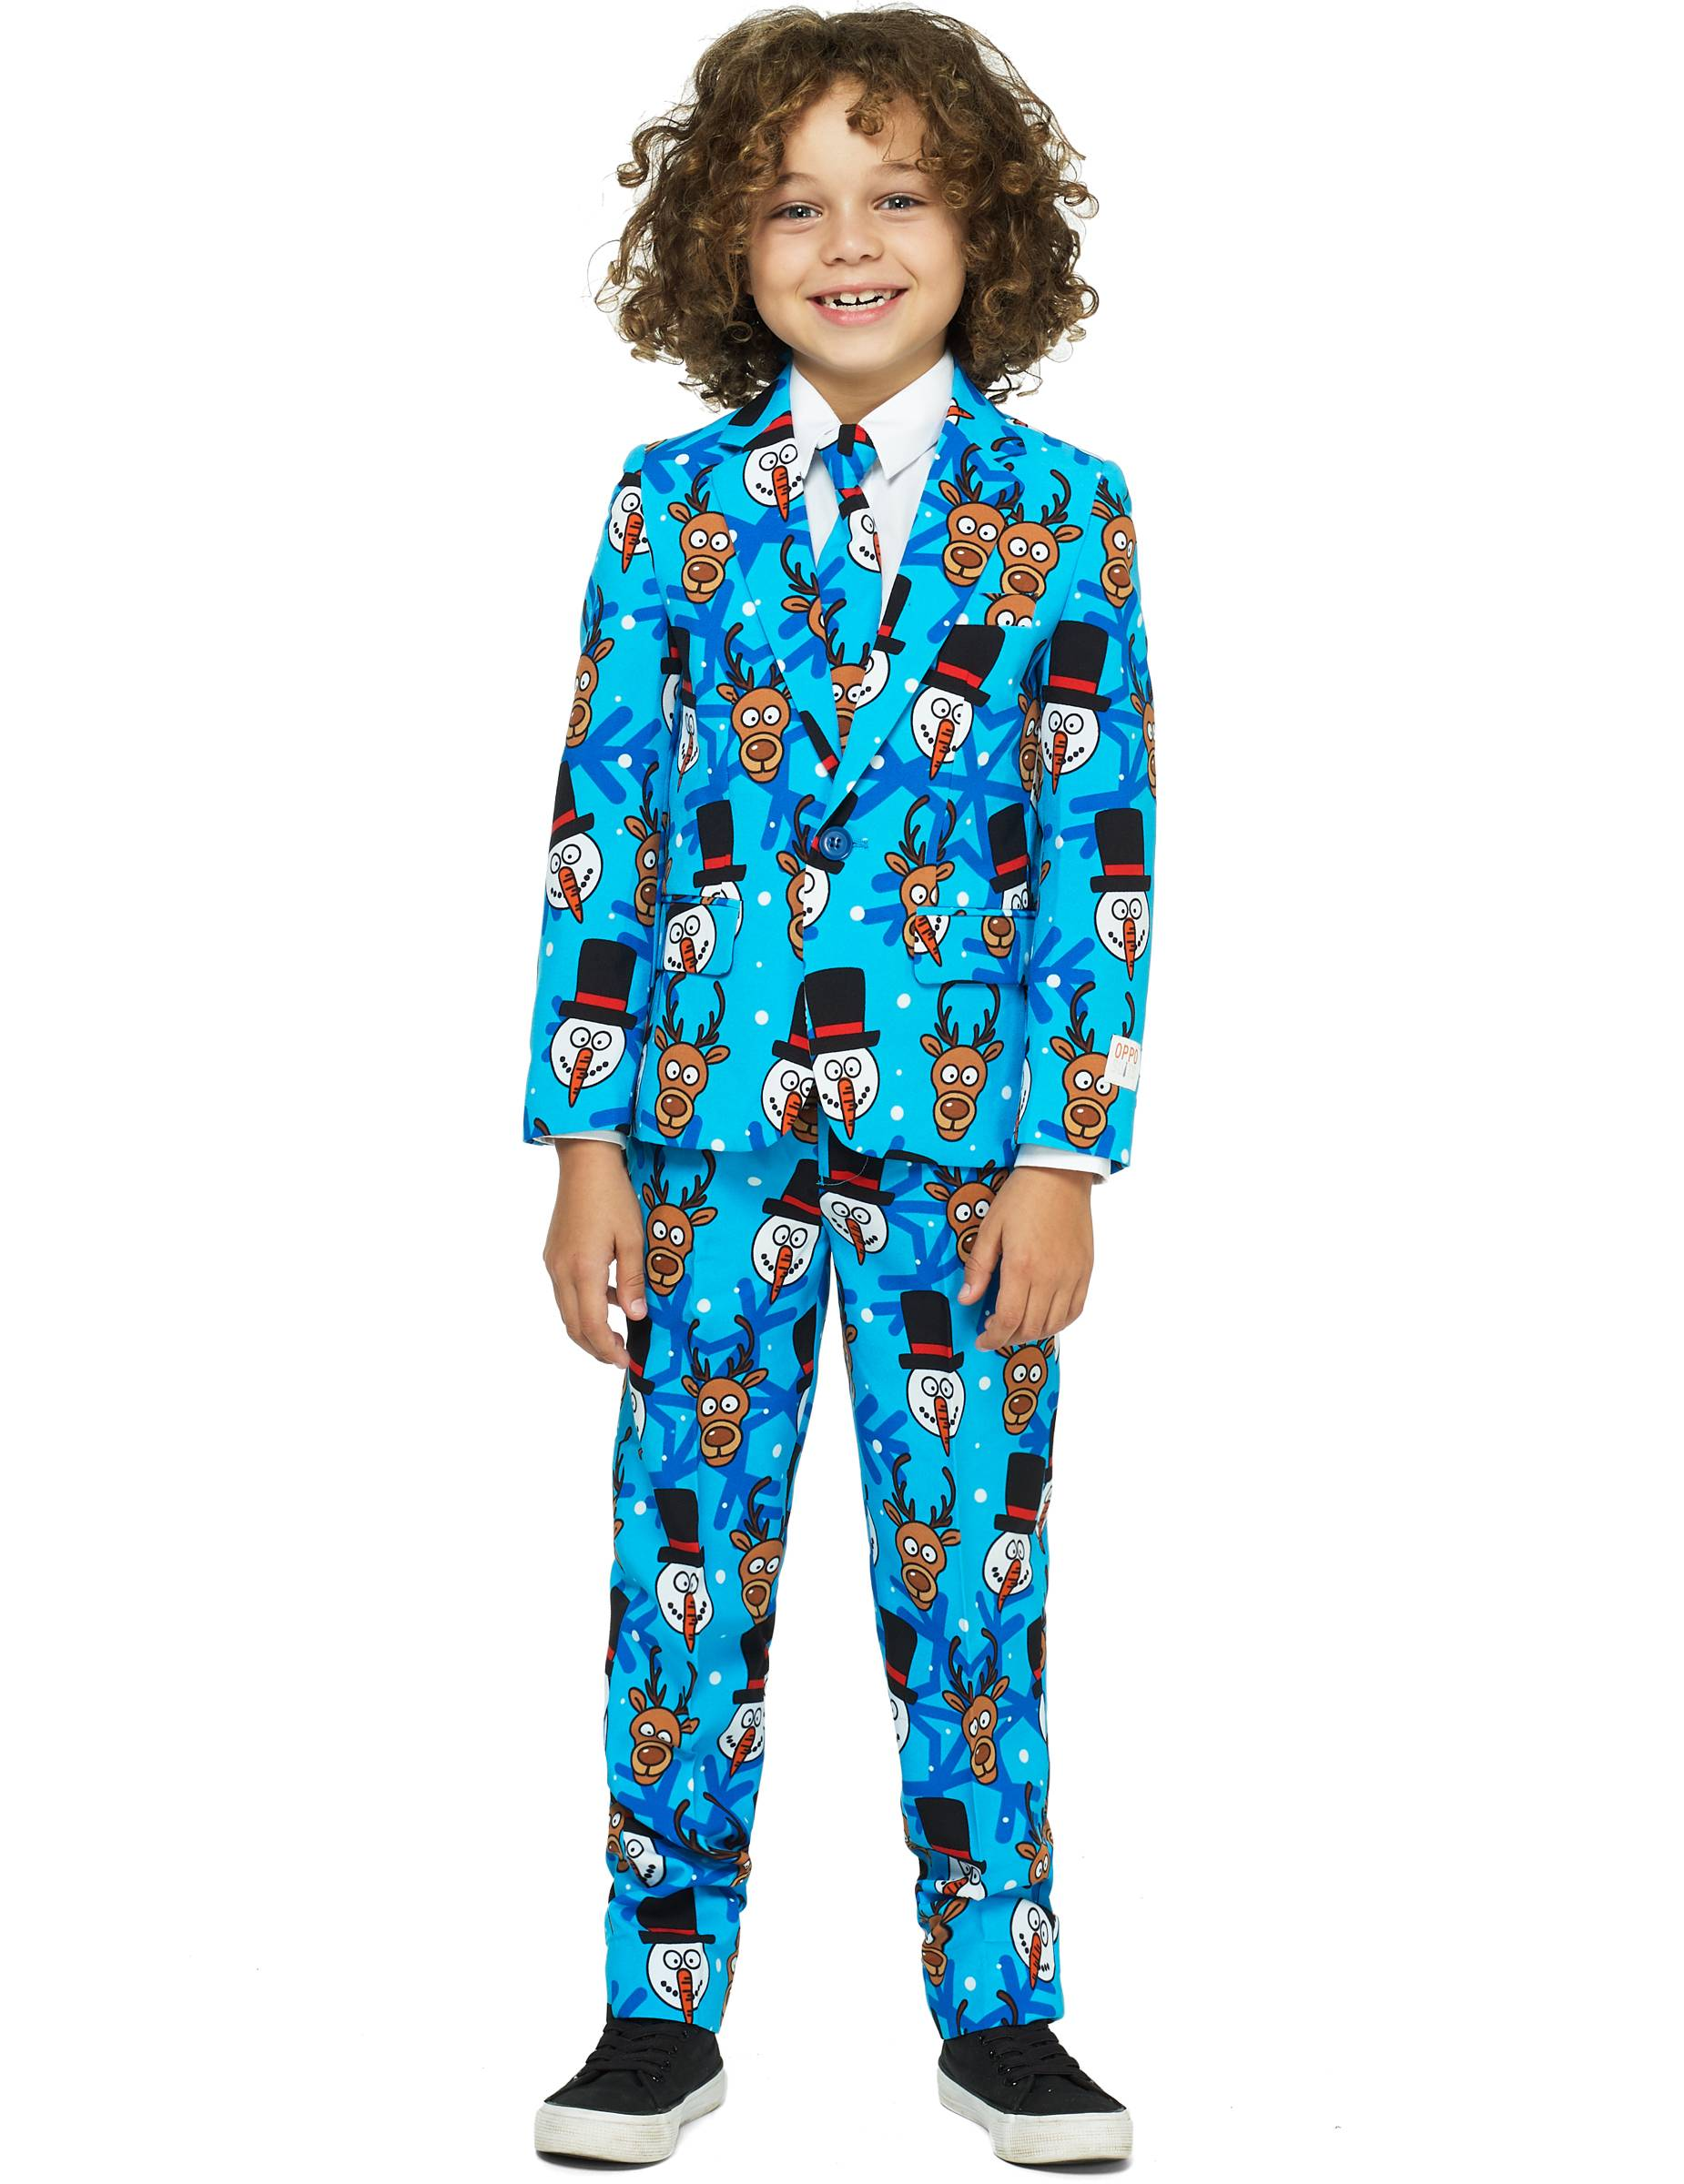 Vegaoo Costume Mr Winter winner bambino Opposuits - 6 - 8 anni ( 110 - 116 cm)